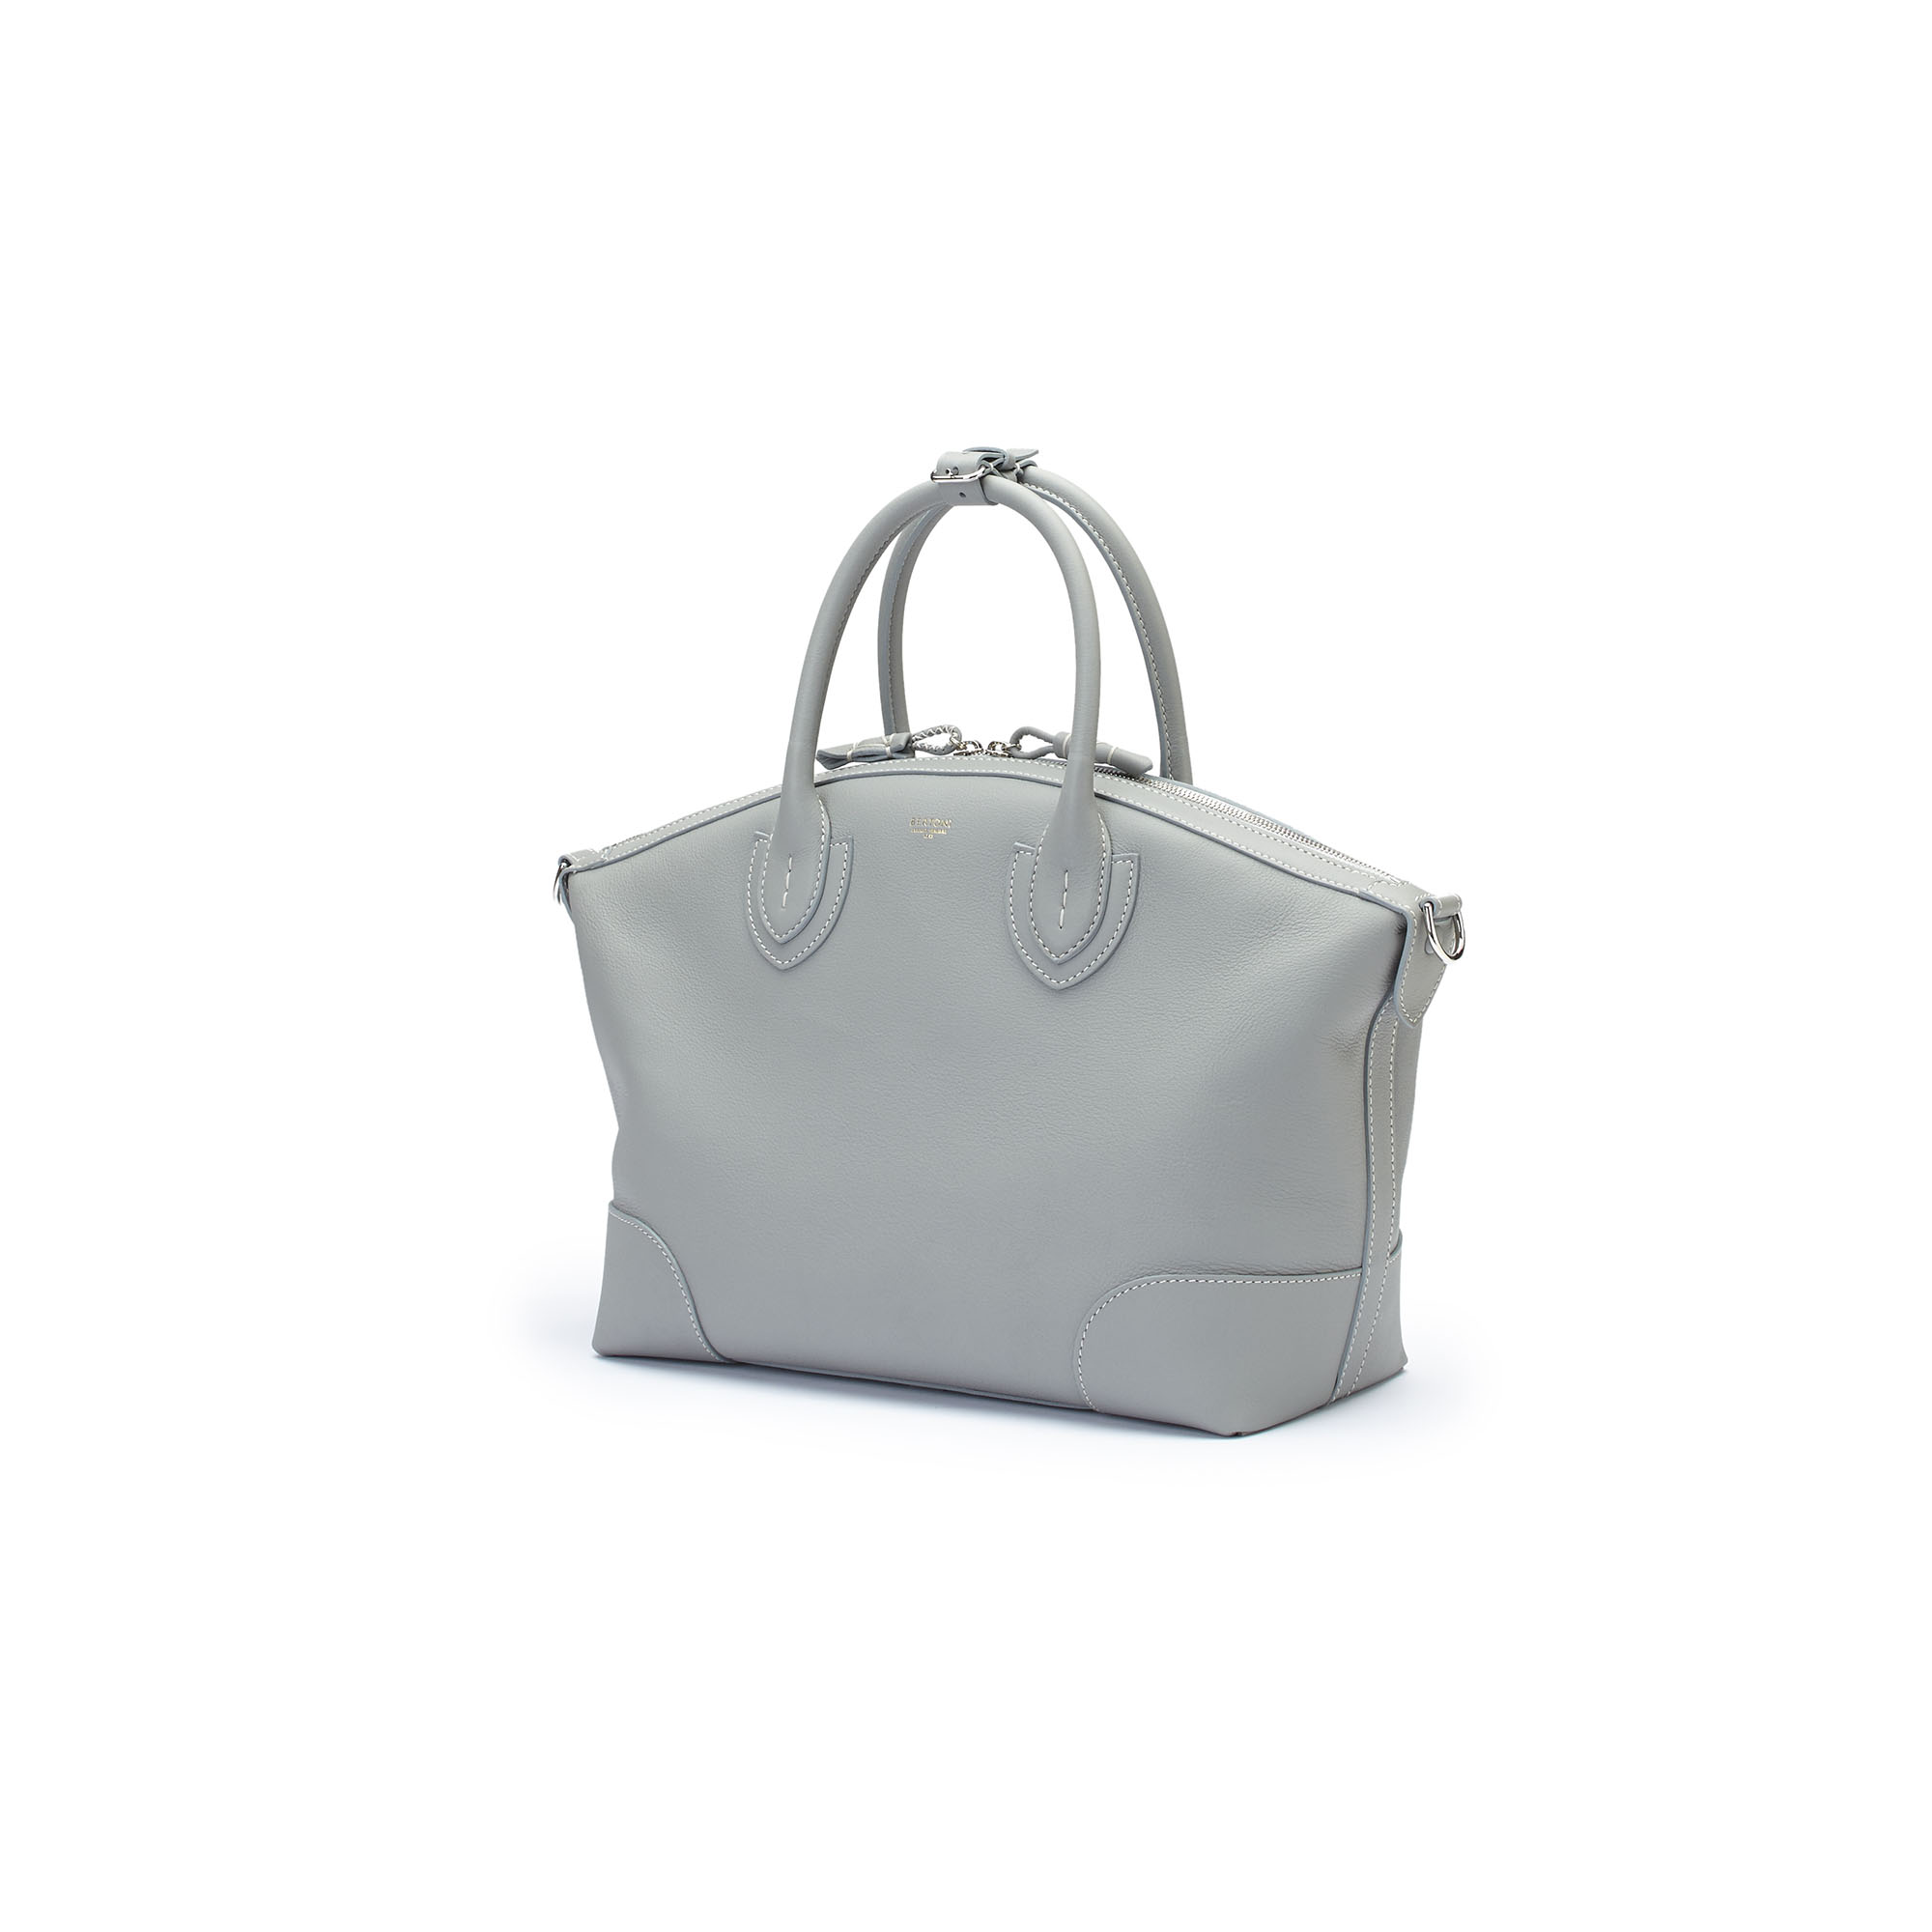 The sage soft calf Anija bag by Bertoni 1949 02